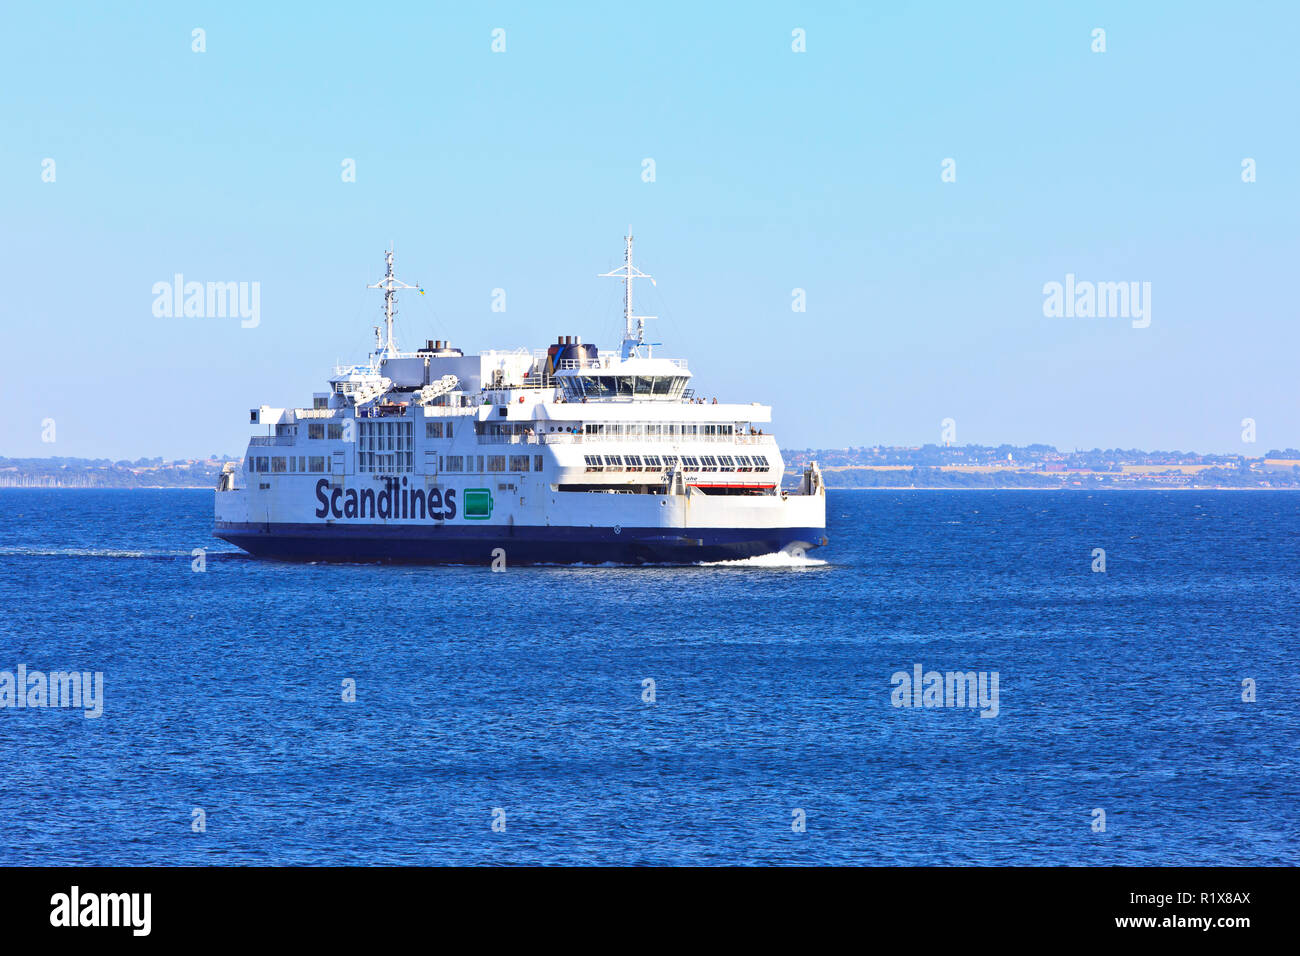 The MF Tycho Brahe ferry at sea on its way from Helsingborg, Sweden to Helsingor, Denmark Stock Photo